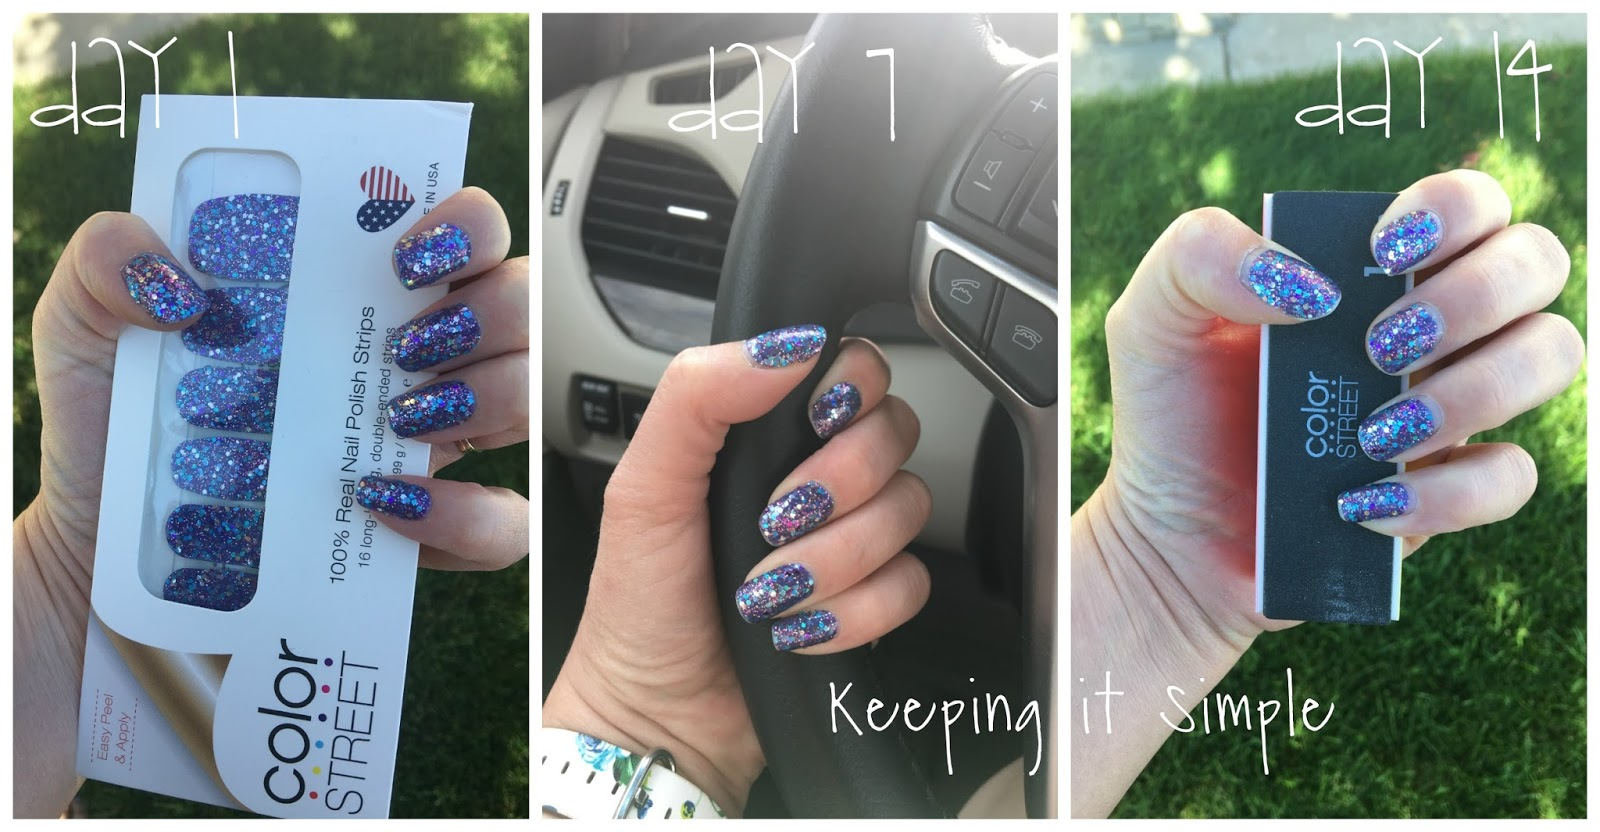 Tips On How To Remove Color Street Nails Easily Keeping It Simple